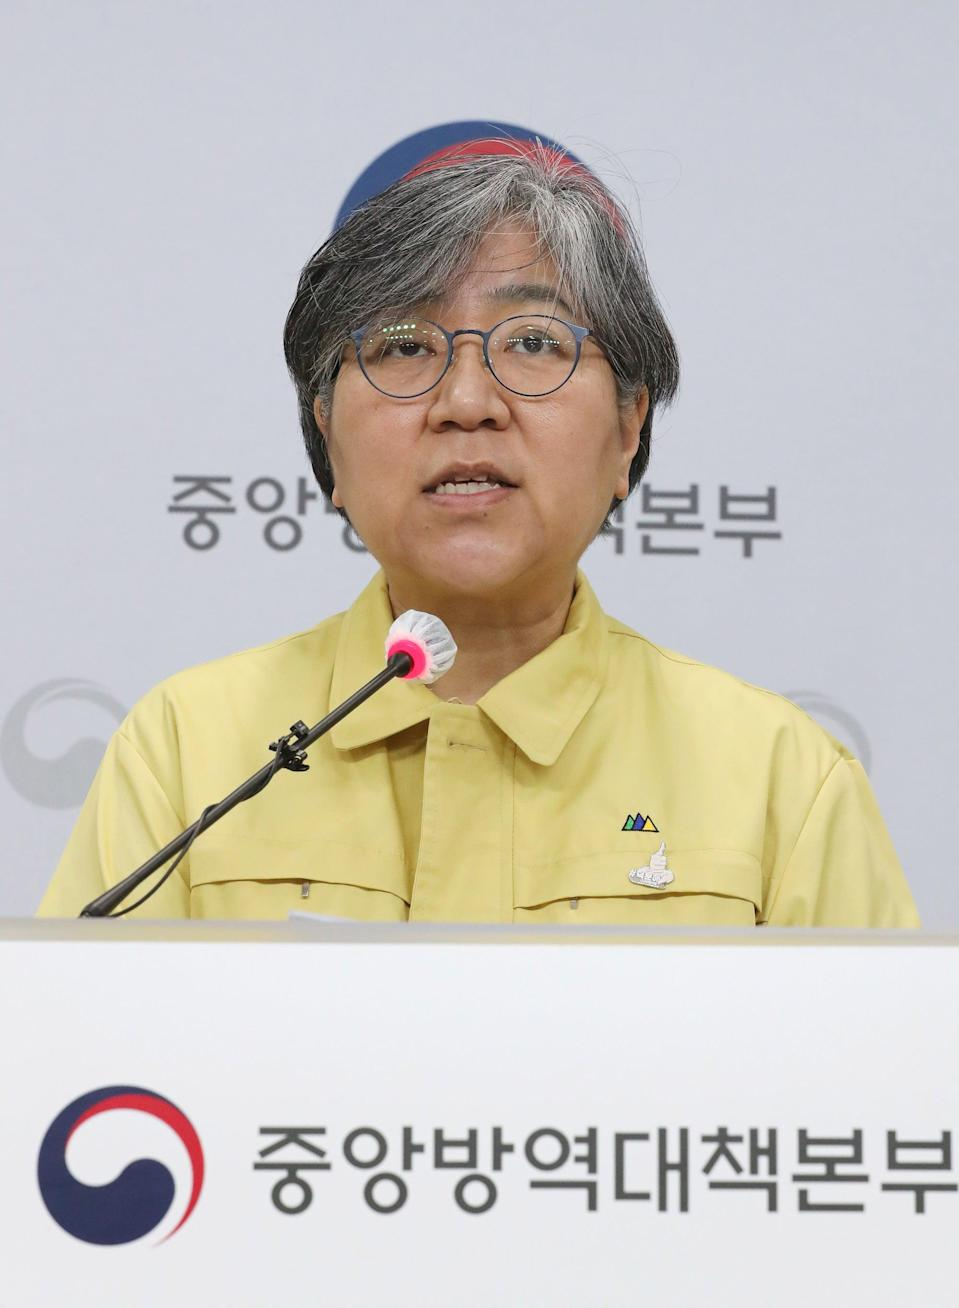 "<h2>Dr Jeong Eun-kyeong, South Korea<br></h2><br>Dr Jeong Eun-kyeong is commissioner of the Korea Disease Control and Prevention Agency (KDCA) in South Korea. She has been described as a ""virus-hunter"" for the way she has led her country's response to the pandemic, holding daily briefings to release transparent updates on the number of <a href=""https://time.com/5800901/coronavirus-map/"" rel=""nofollow noopener"" target=""_blank"" data-ylk=""slk:confirmed cases"" class=""link rapid-noclick-resp"">confirmed cases</a>, the origins of infections and the latest figures on tests, quarantine and treatment. As a result, South Korea is seen as a global leader in its response to the pandemic: so far the country has recorded 91,240 cases of COVID-19, with only 1,619 deaths.<span class=""copyright"">Photo Courtesy of YONHAP/EPA-EFE/Shutterstock.</span>"